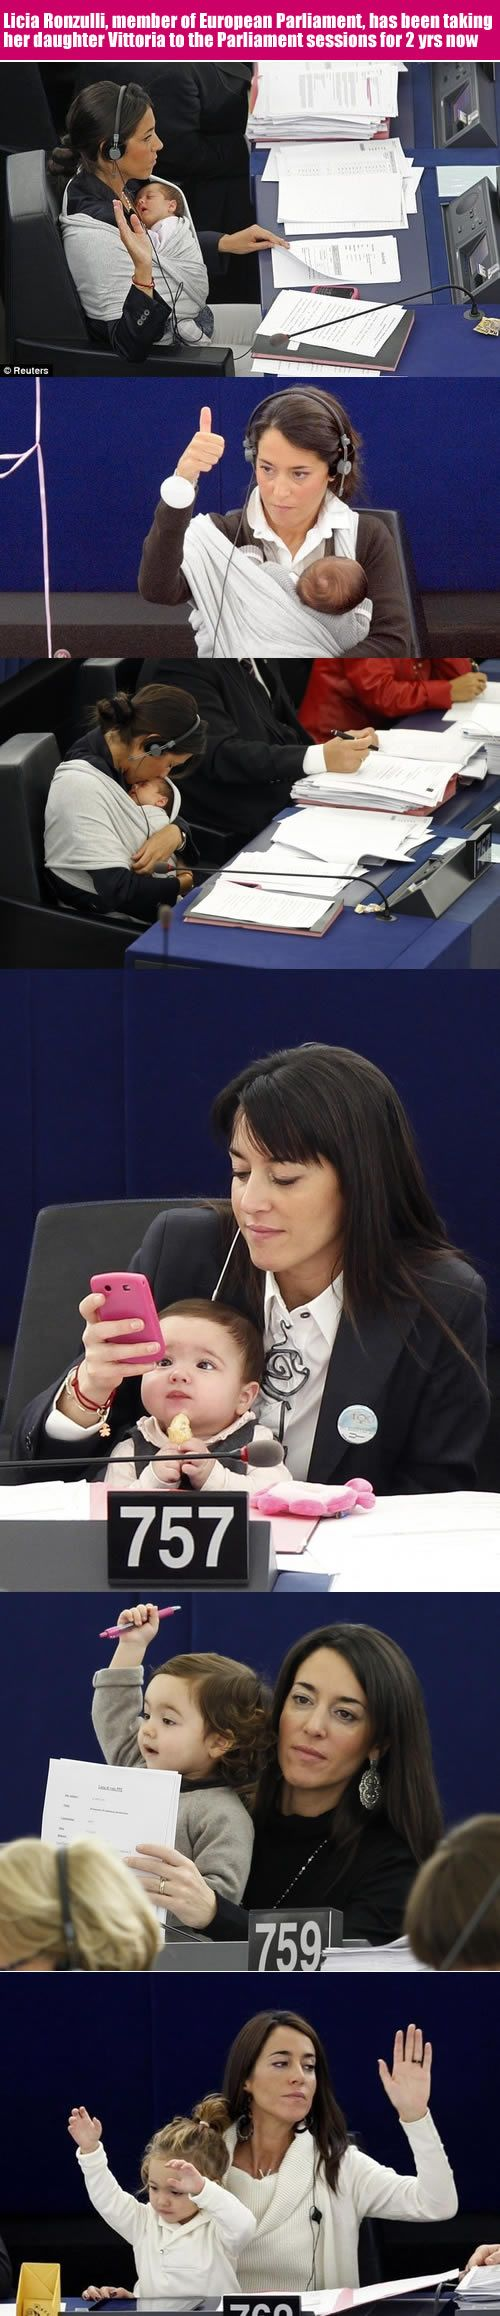 Motherhood at its best.--Licia Ronzulli, member of European Parliament, has been taking her daughter Vittoria to the Parliament sessions for 2 yrs now. Mother with a Career!